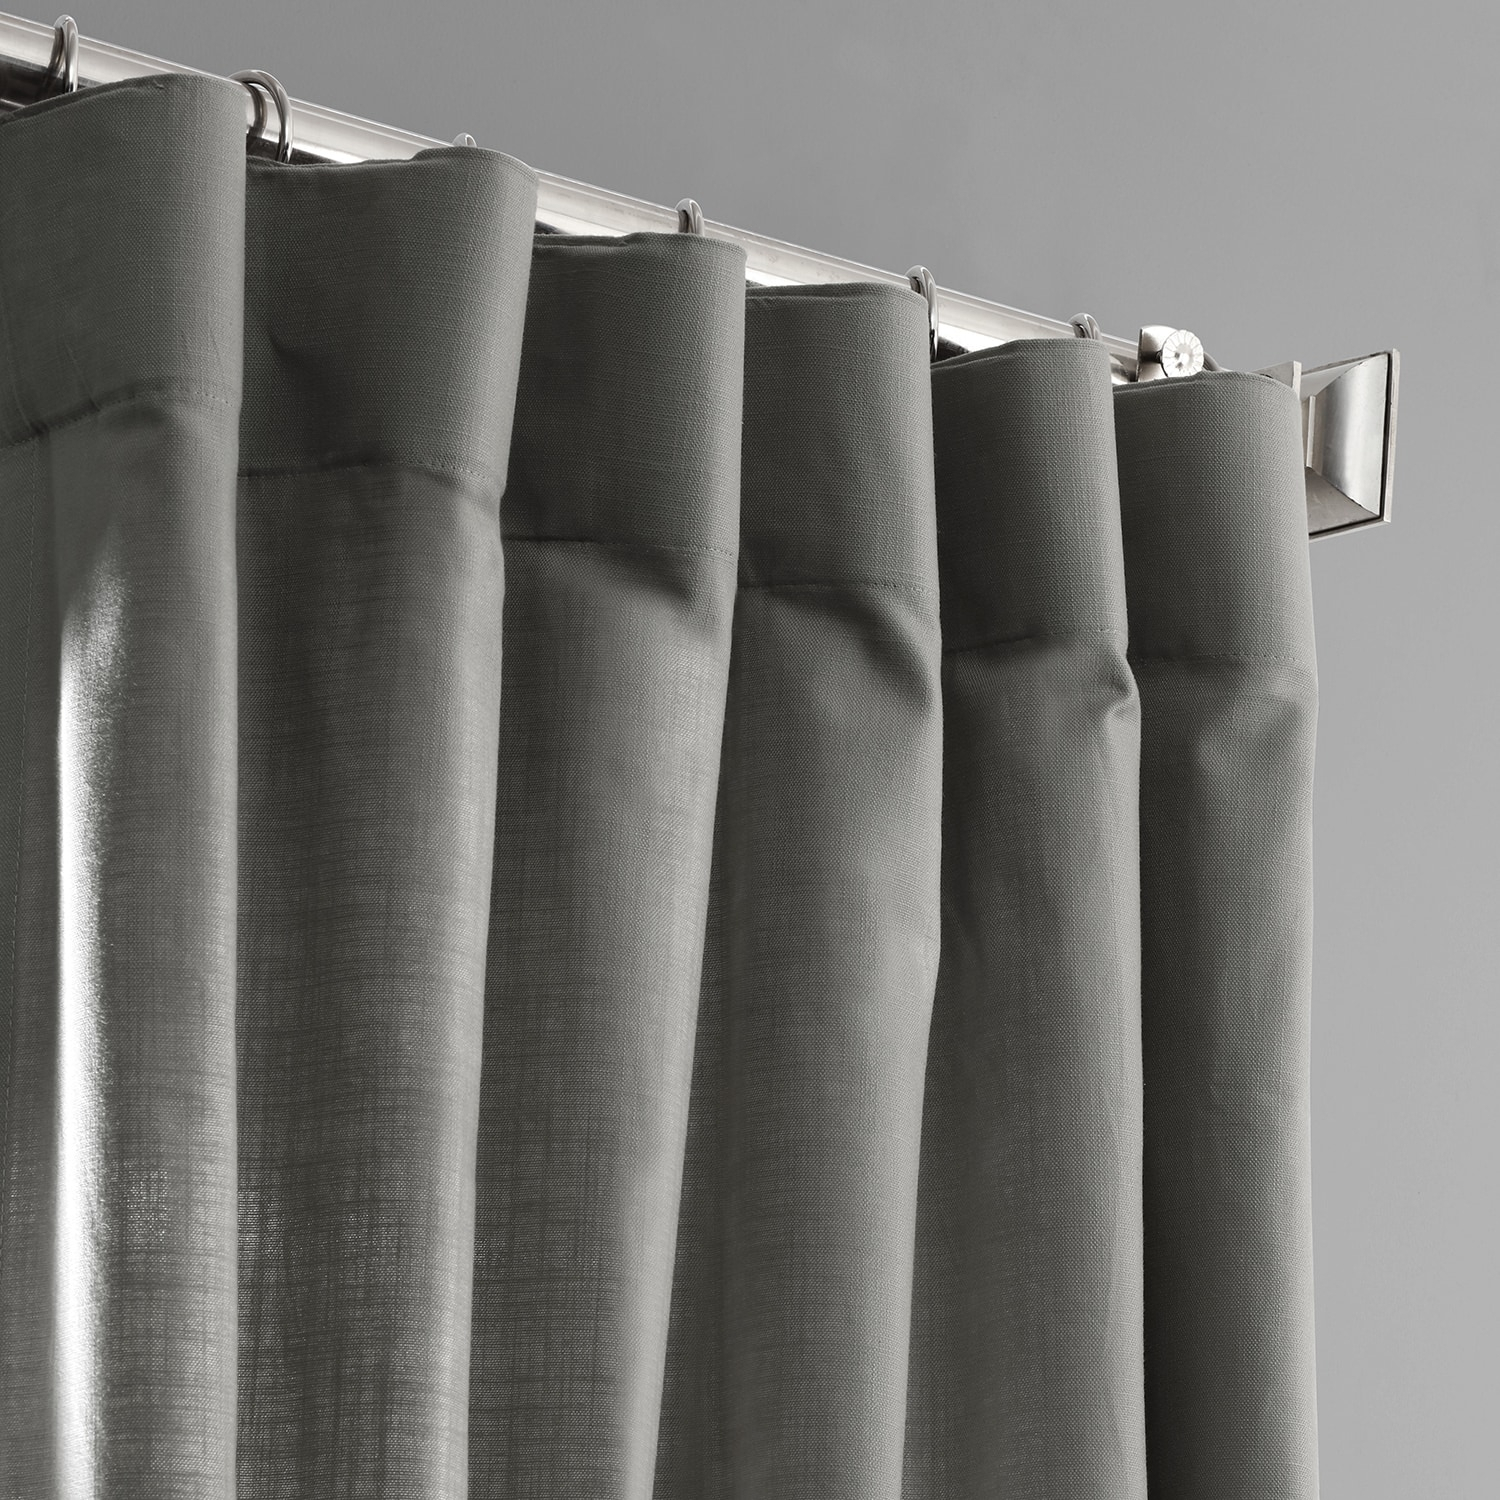 Details About Country Cotton Linen Weave Curtains (Sold Per Panel) Intended For Solid Country Cotton Linen Weave Curtain Panels (View 3 of 30)